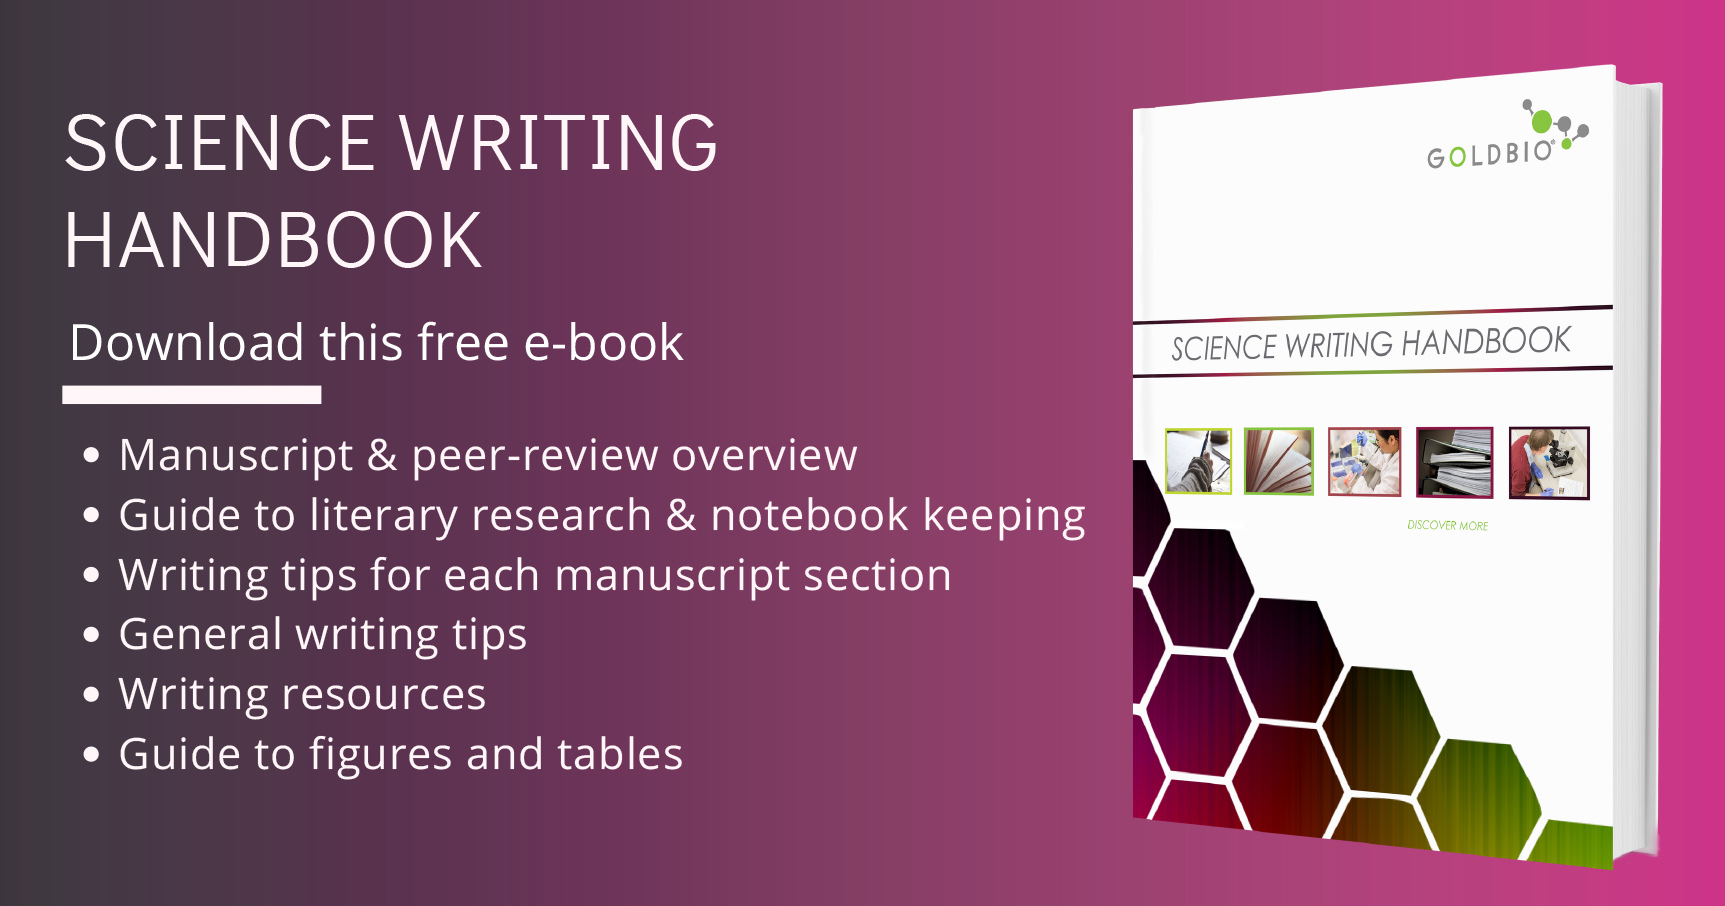 Science Writing Handbook - resource for your scientific research manuscript - free download